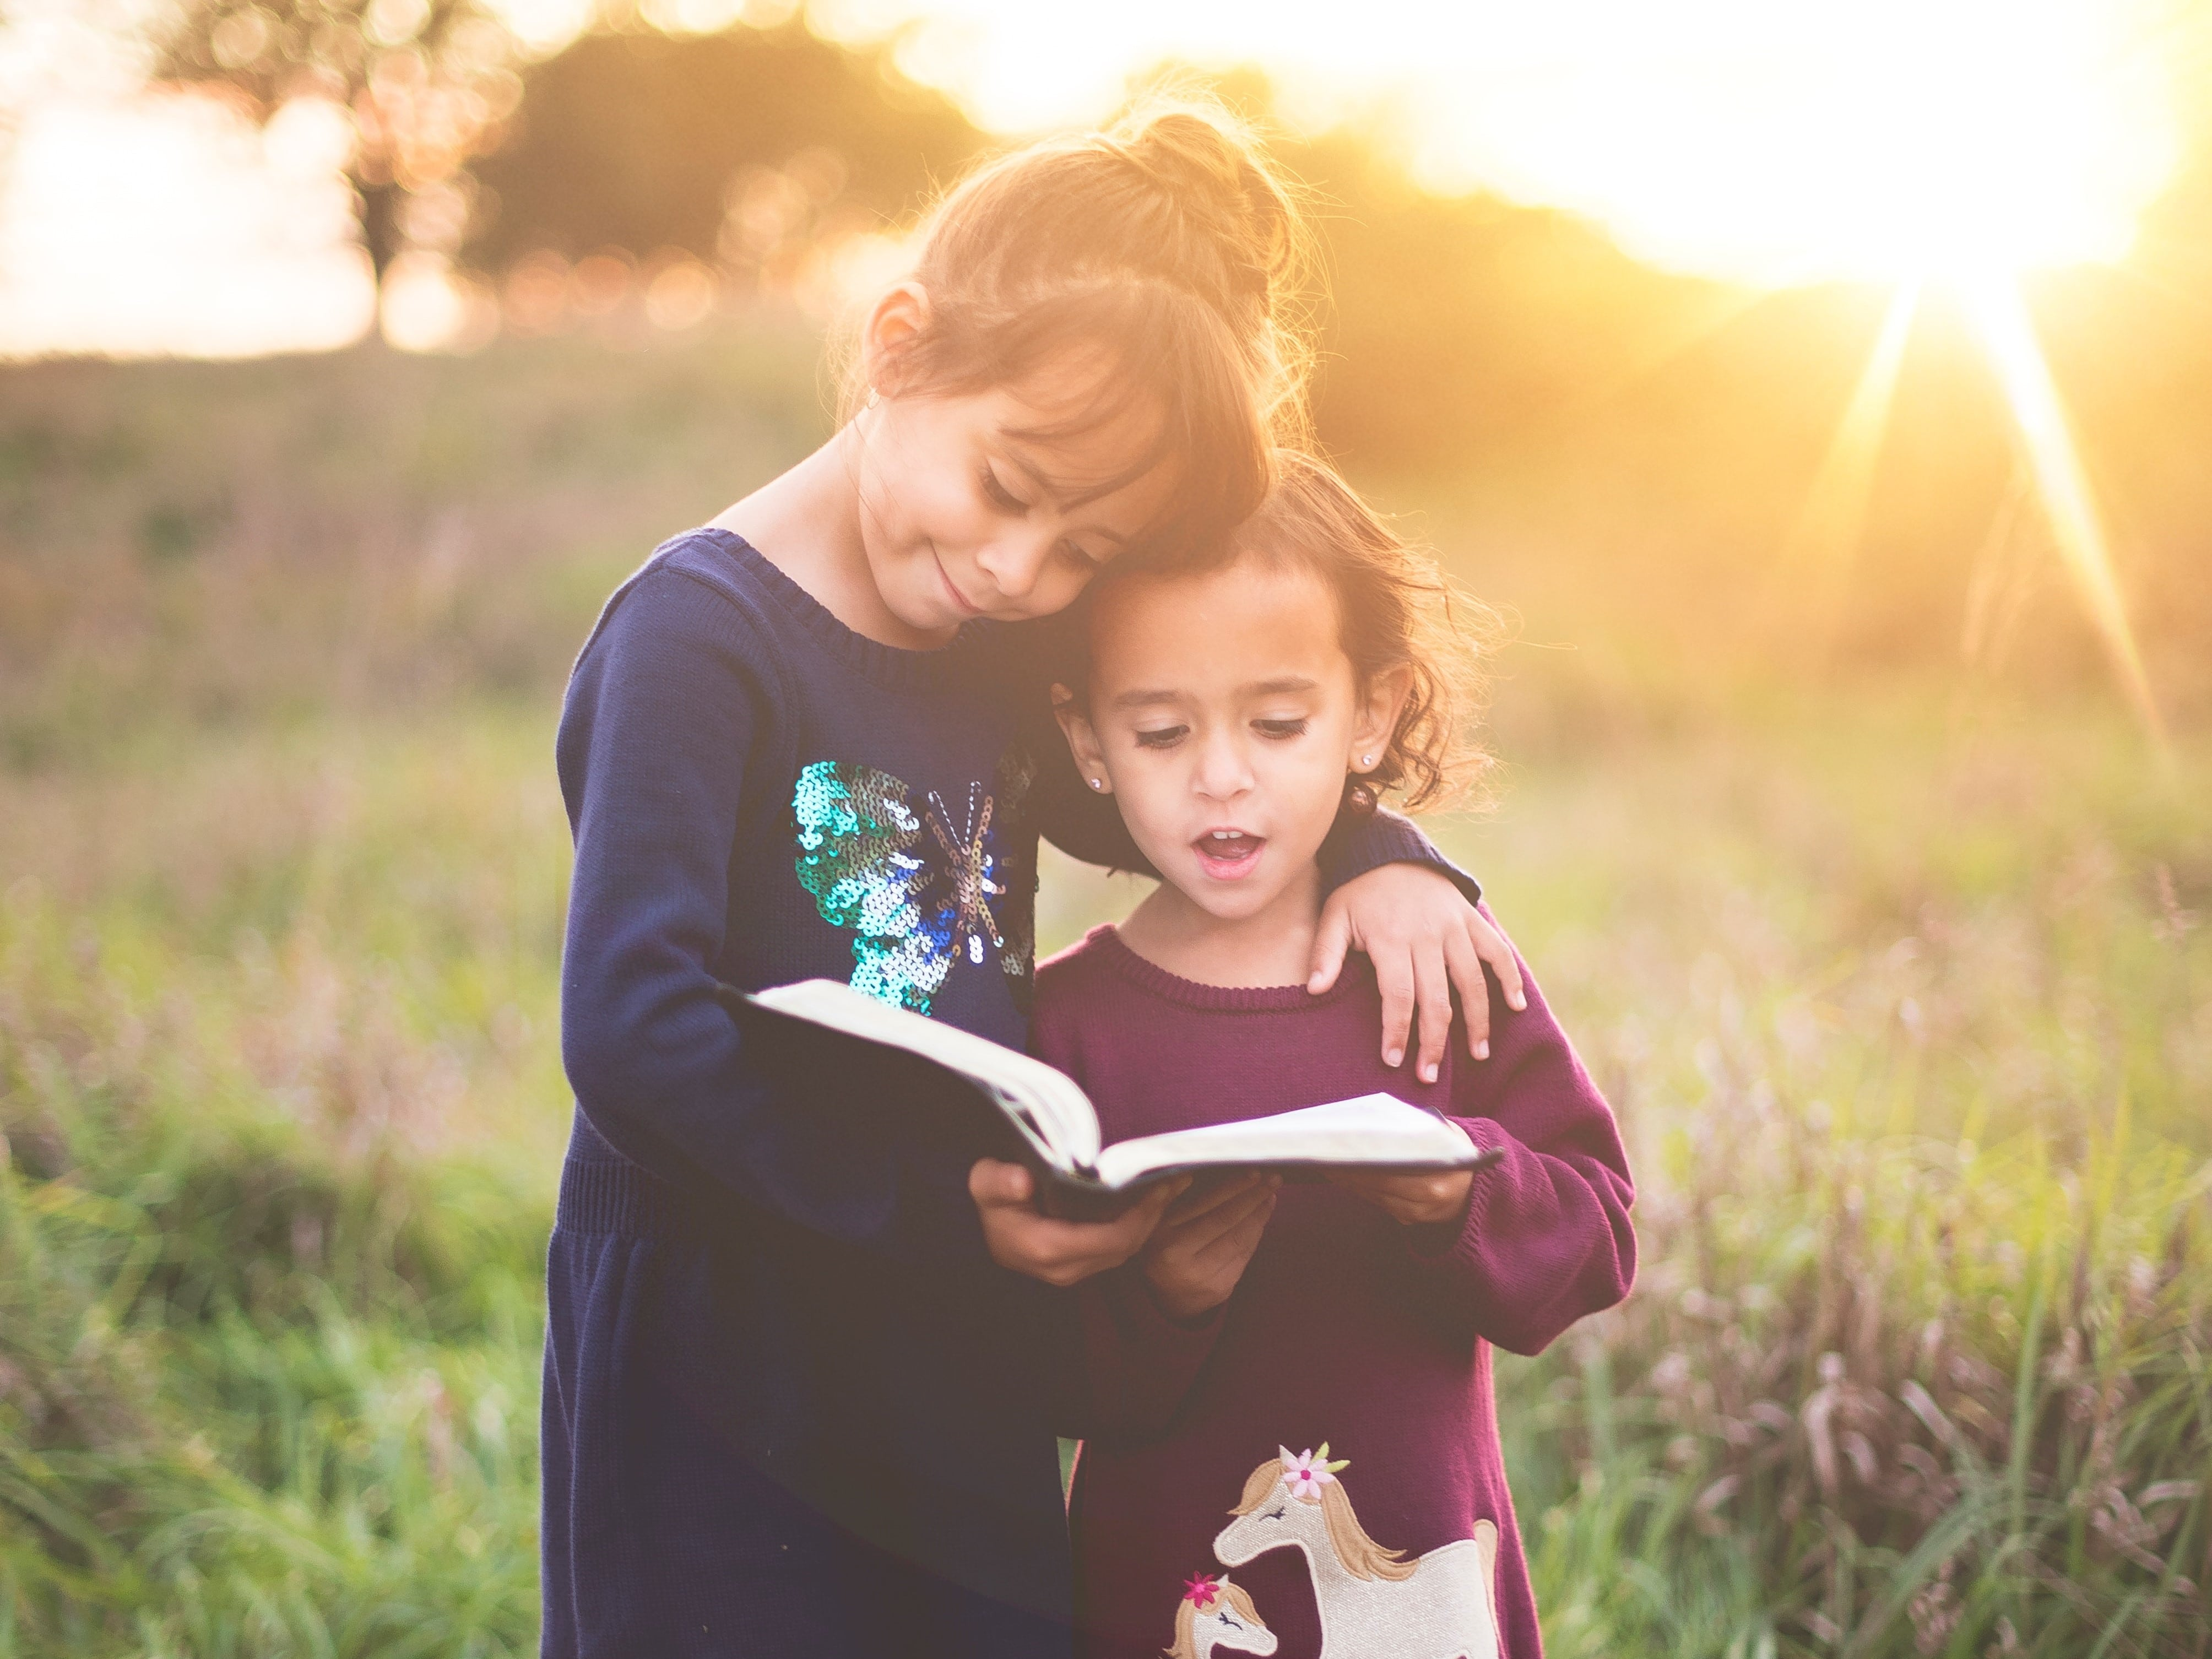 Two kids reading together.